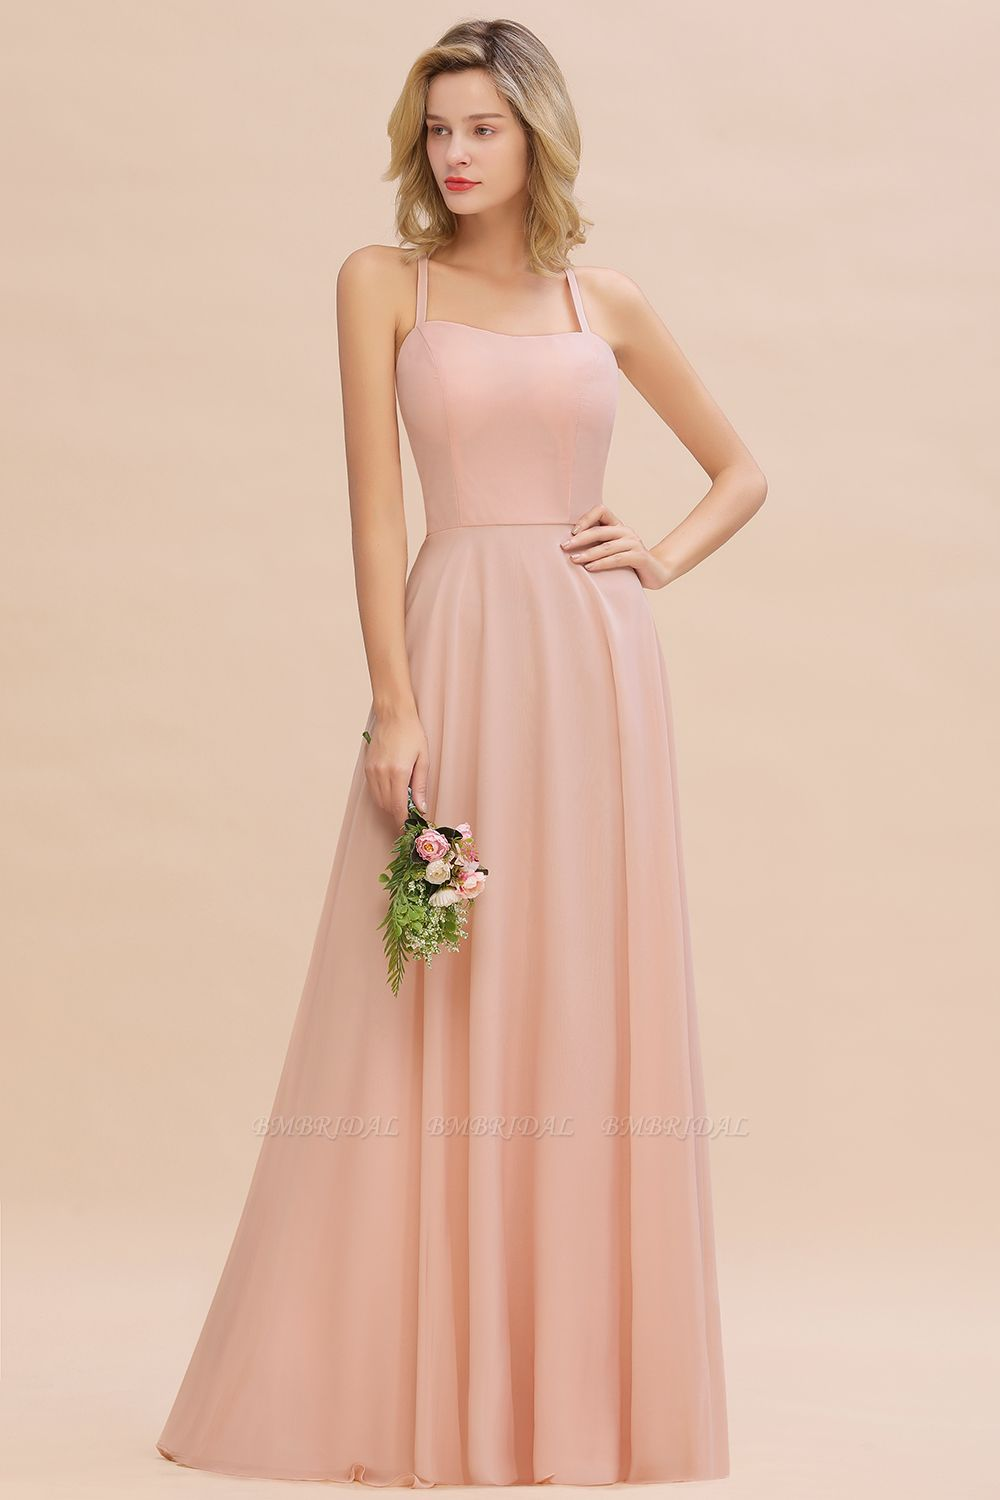 BMbridal Chic Straps Sleeveless Chiffon Affordable Bridesmaid Dresses with Ruffle